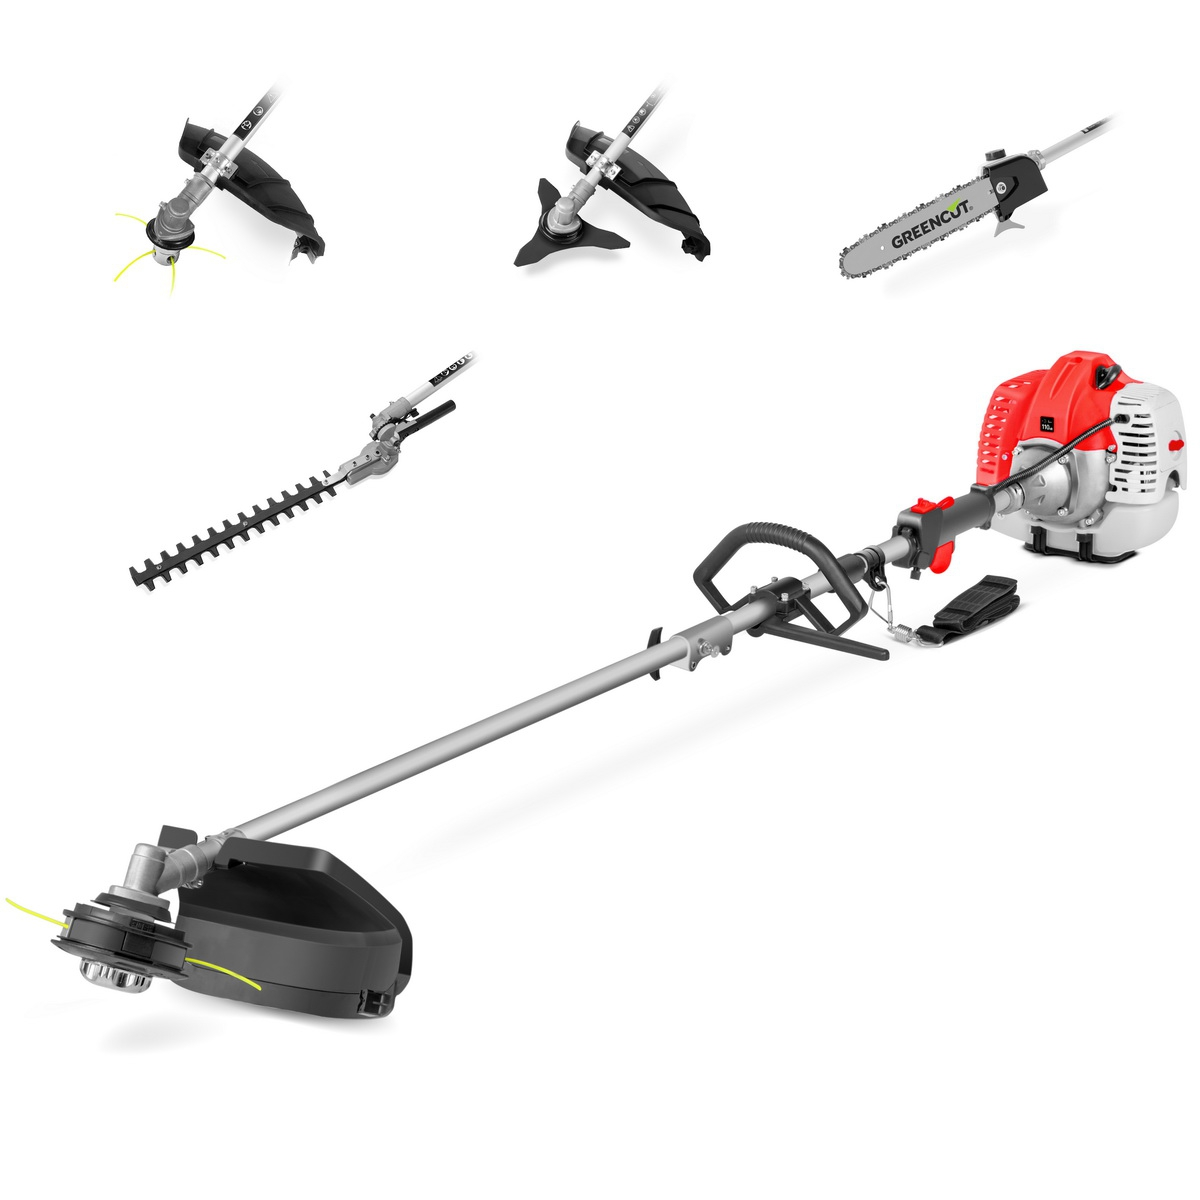 Tool Multifunction 5 In 1 GREENCUT, Gasoline 65cc, 5 Accessories, Brushcutter Function + Mower + Hedge